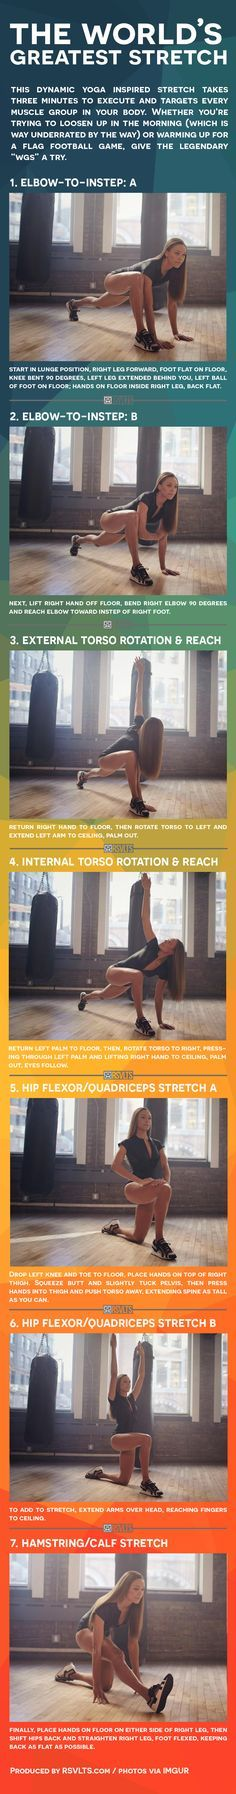 The World's Greatest Stretch [Infographic]